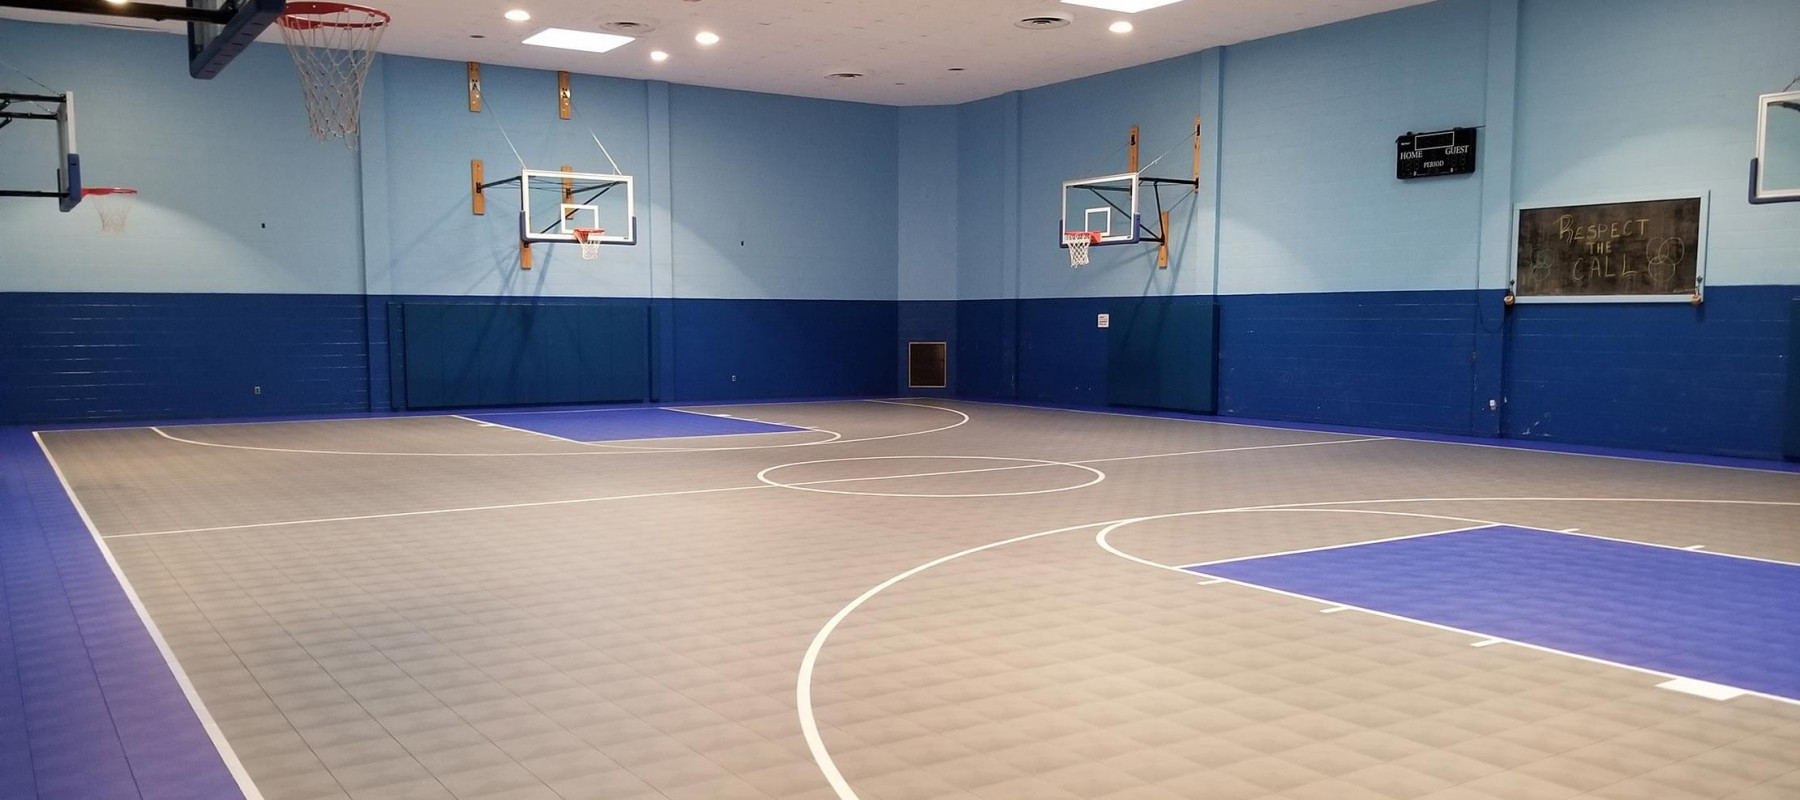 Sports Flooring For Outdoor Basketball Courts Tennis Courts